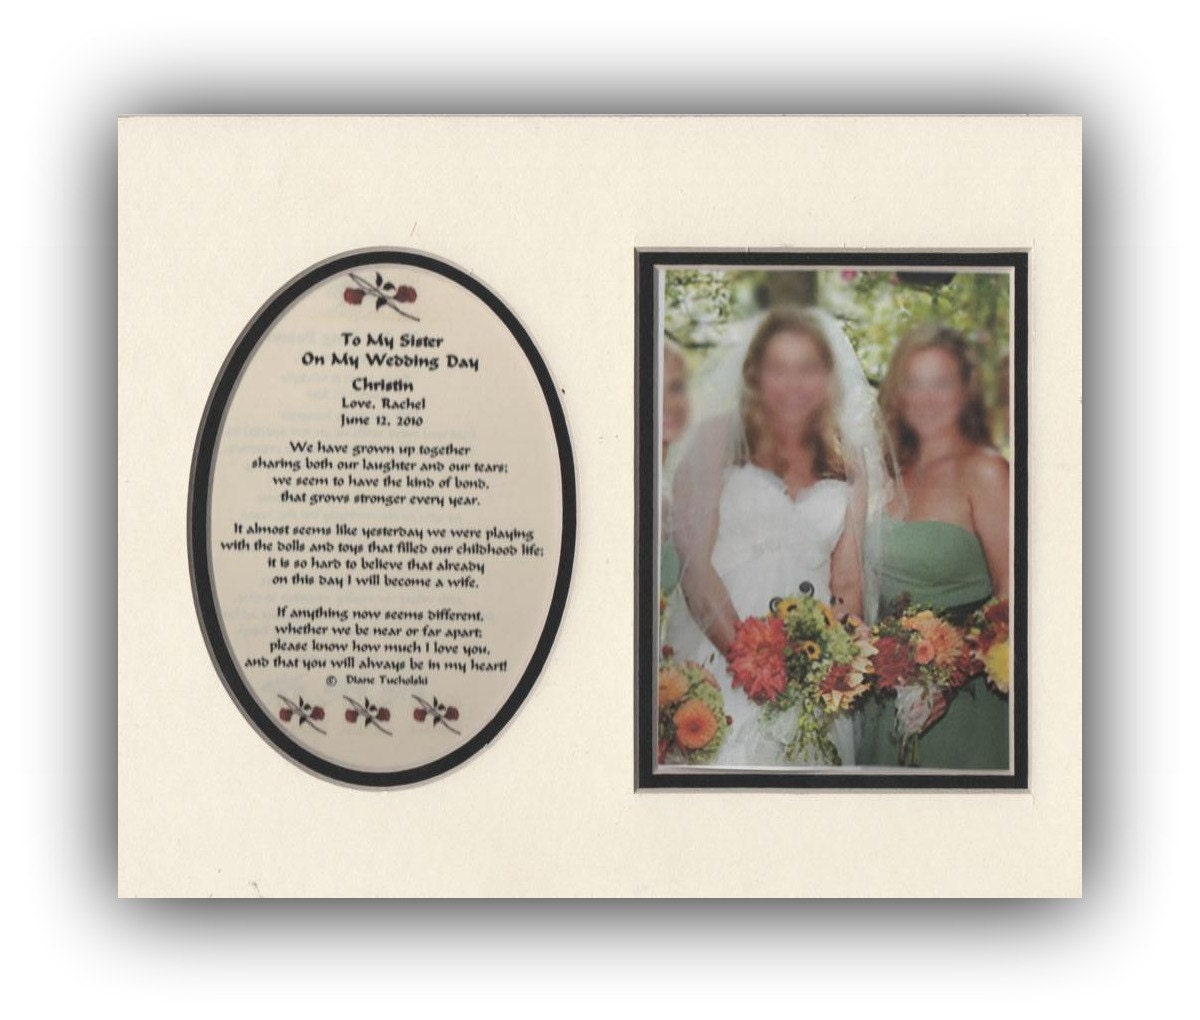 Wedding Day Gift For Sister : ... similar to To My Sister On My Wedding Day Bridal Gift Favor on Etsy